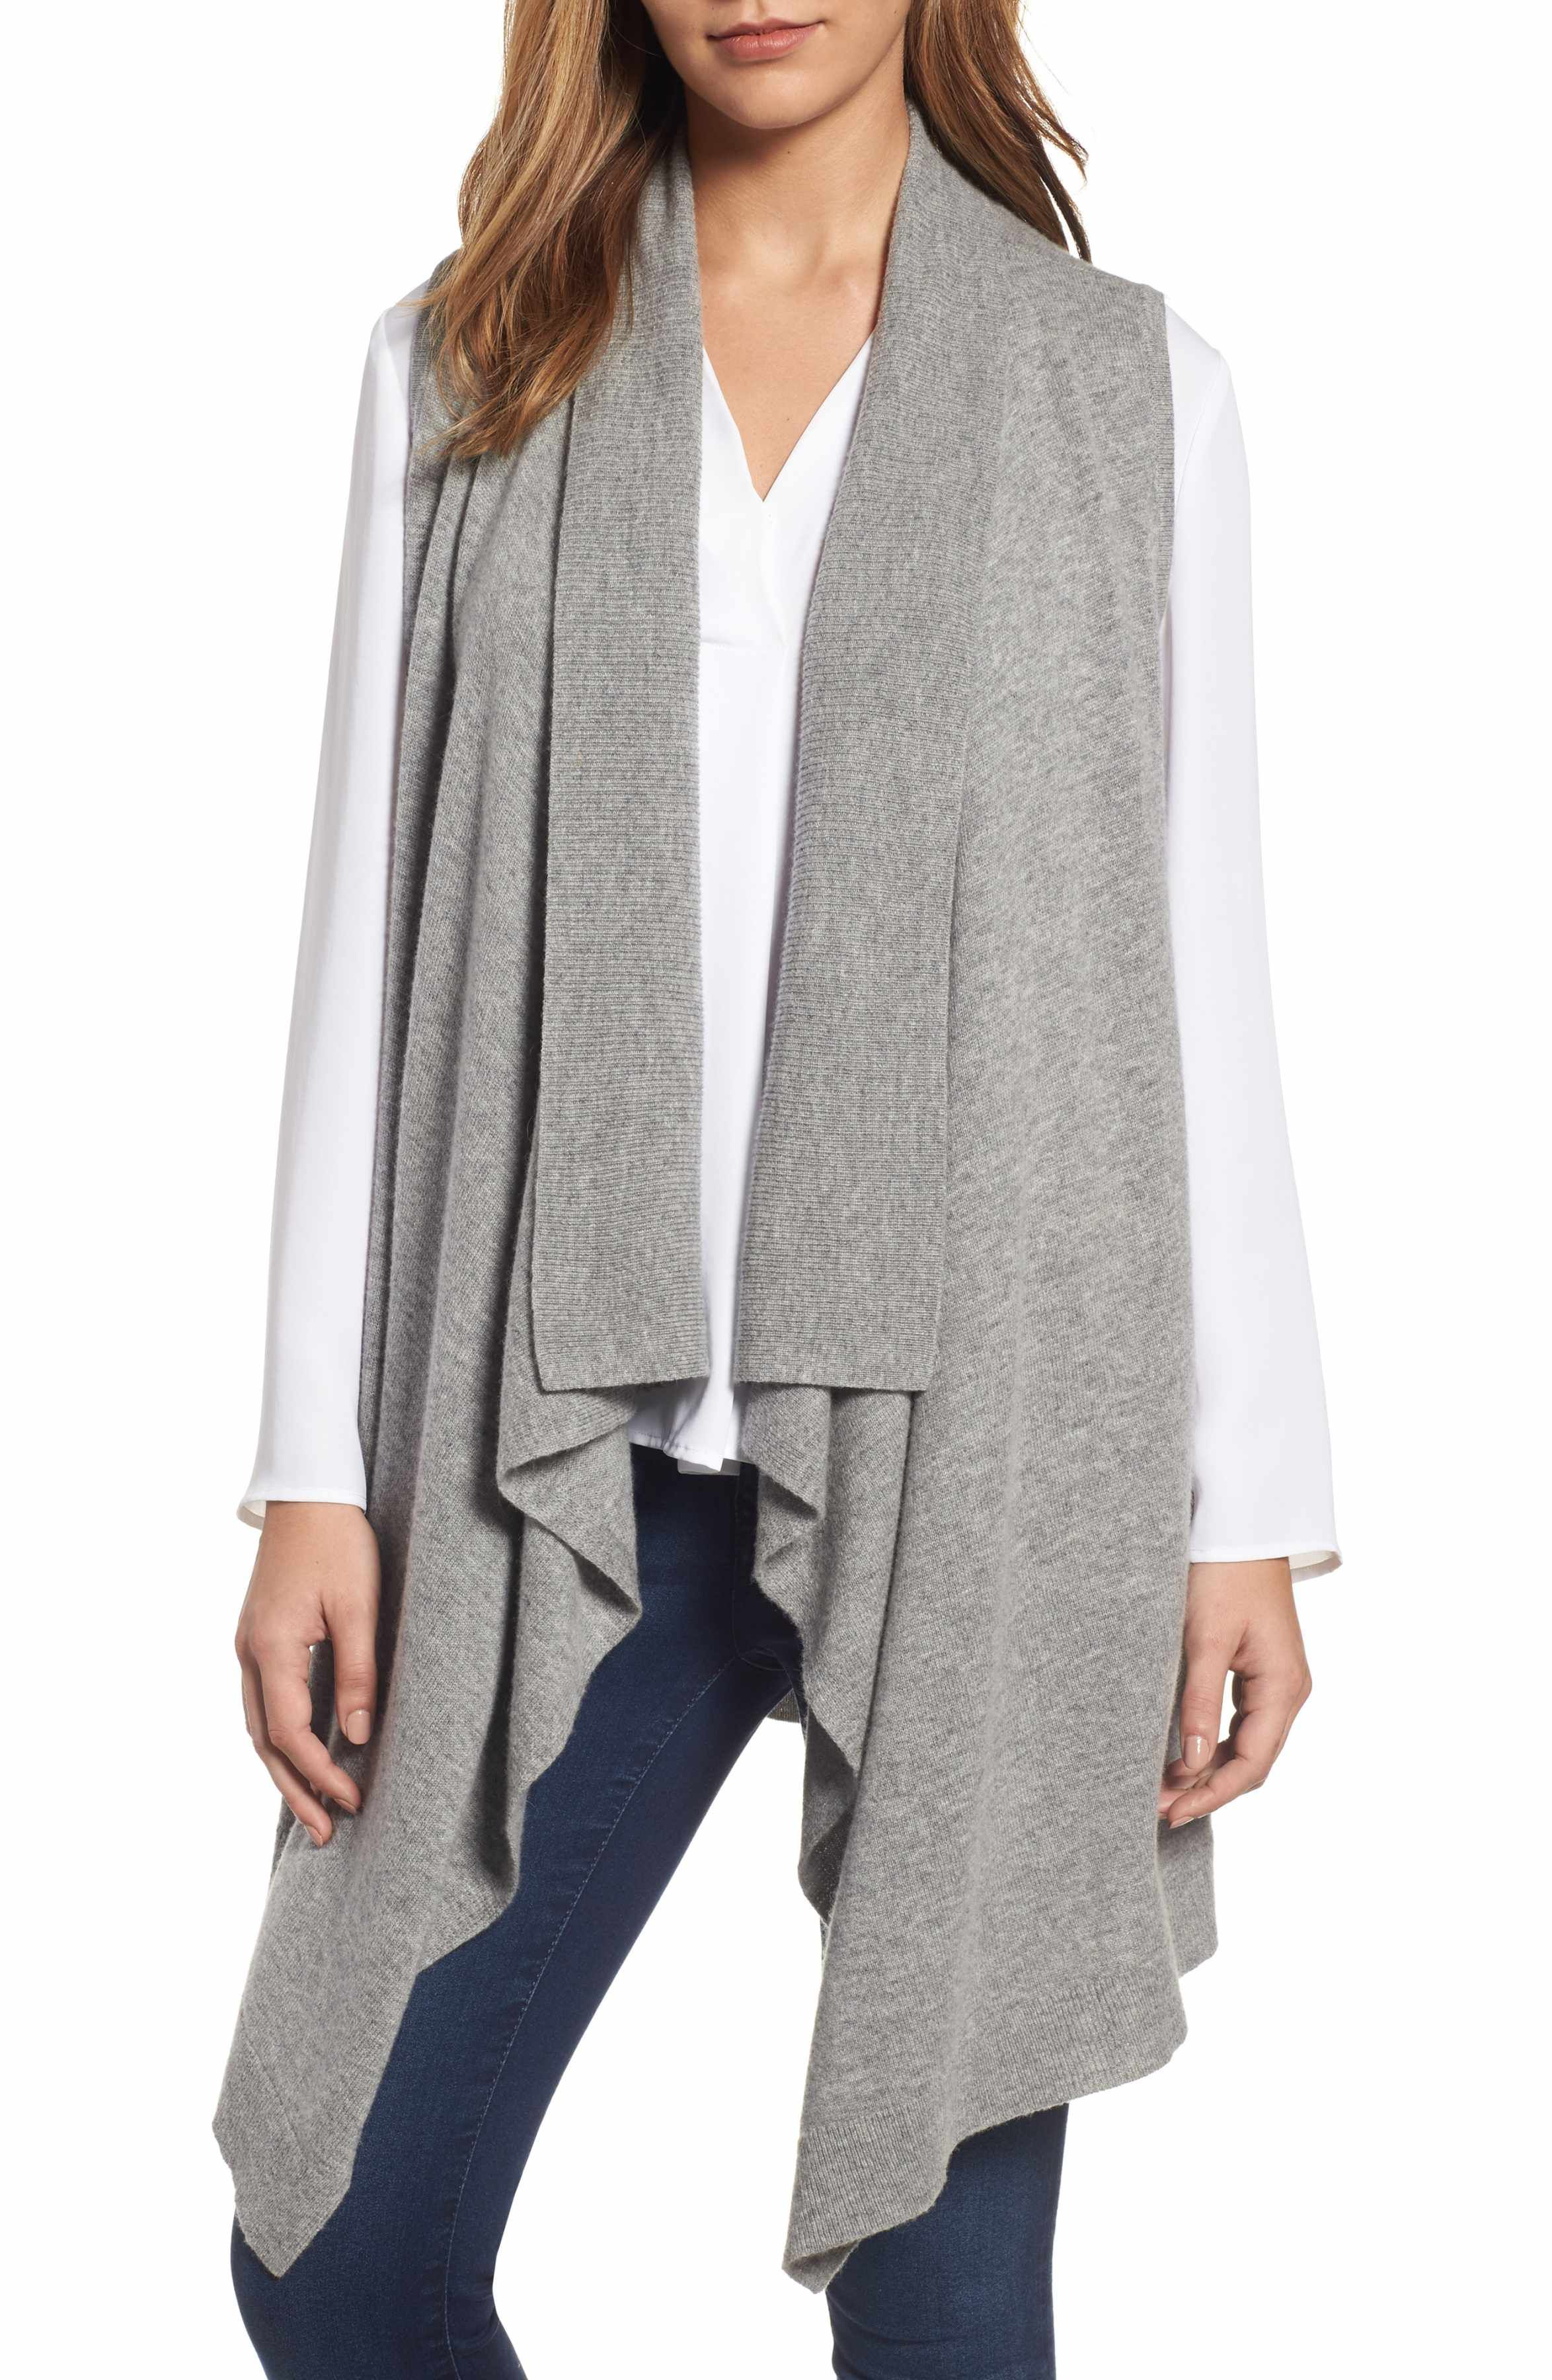 Wool & Cashmere Drape Front Sweater Vest | Cashmere, Nordstrom and ...